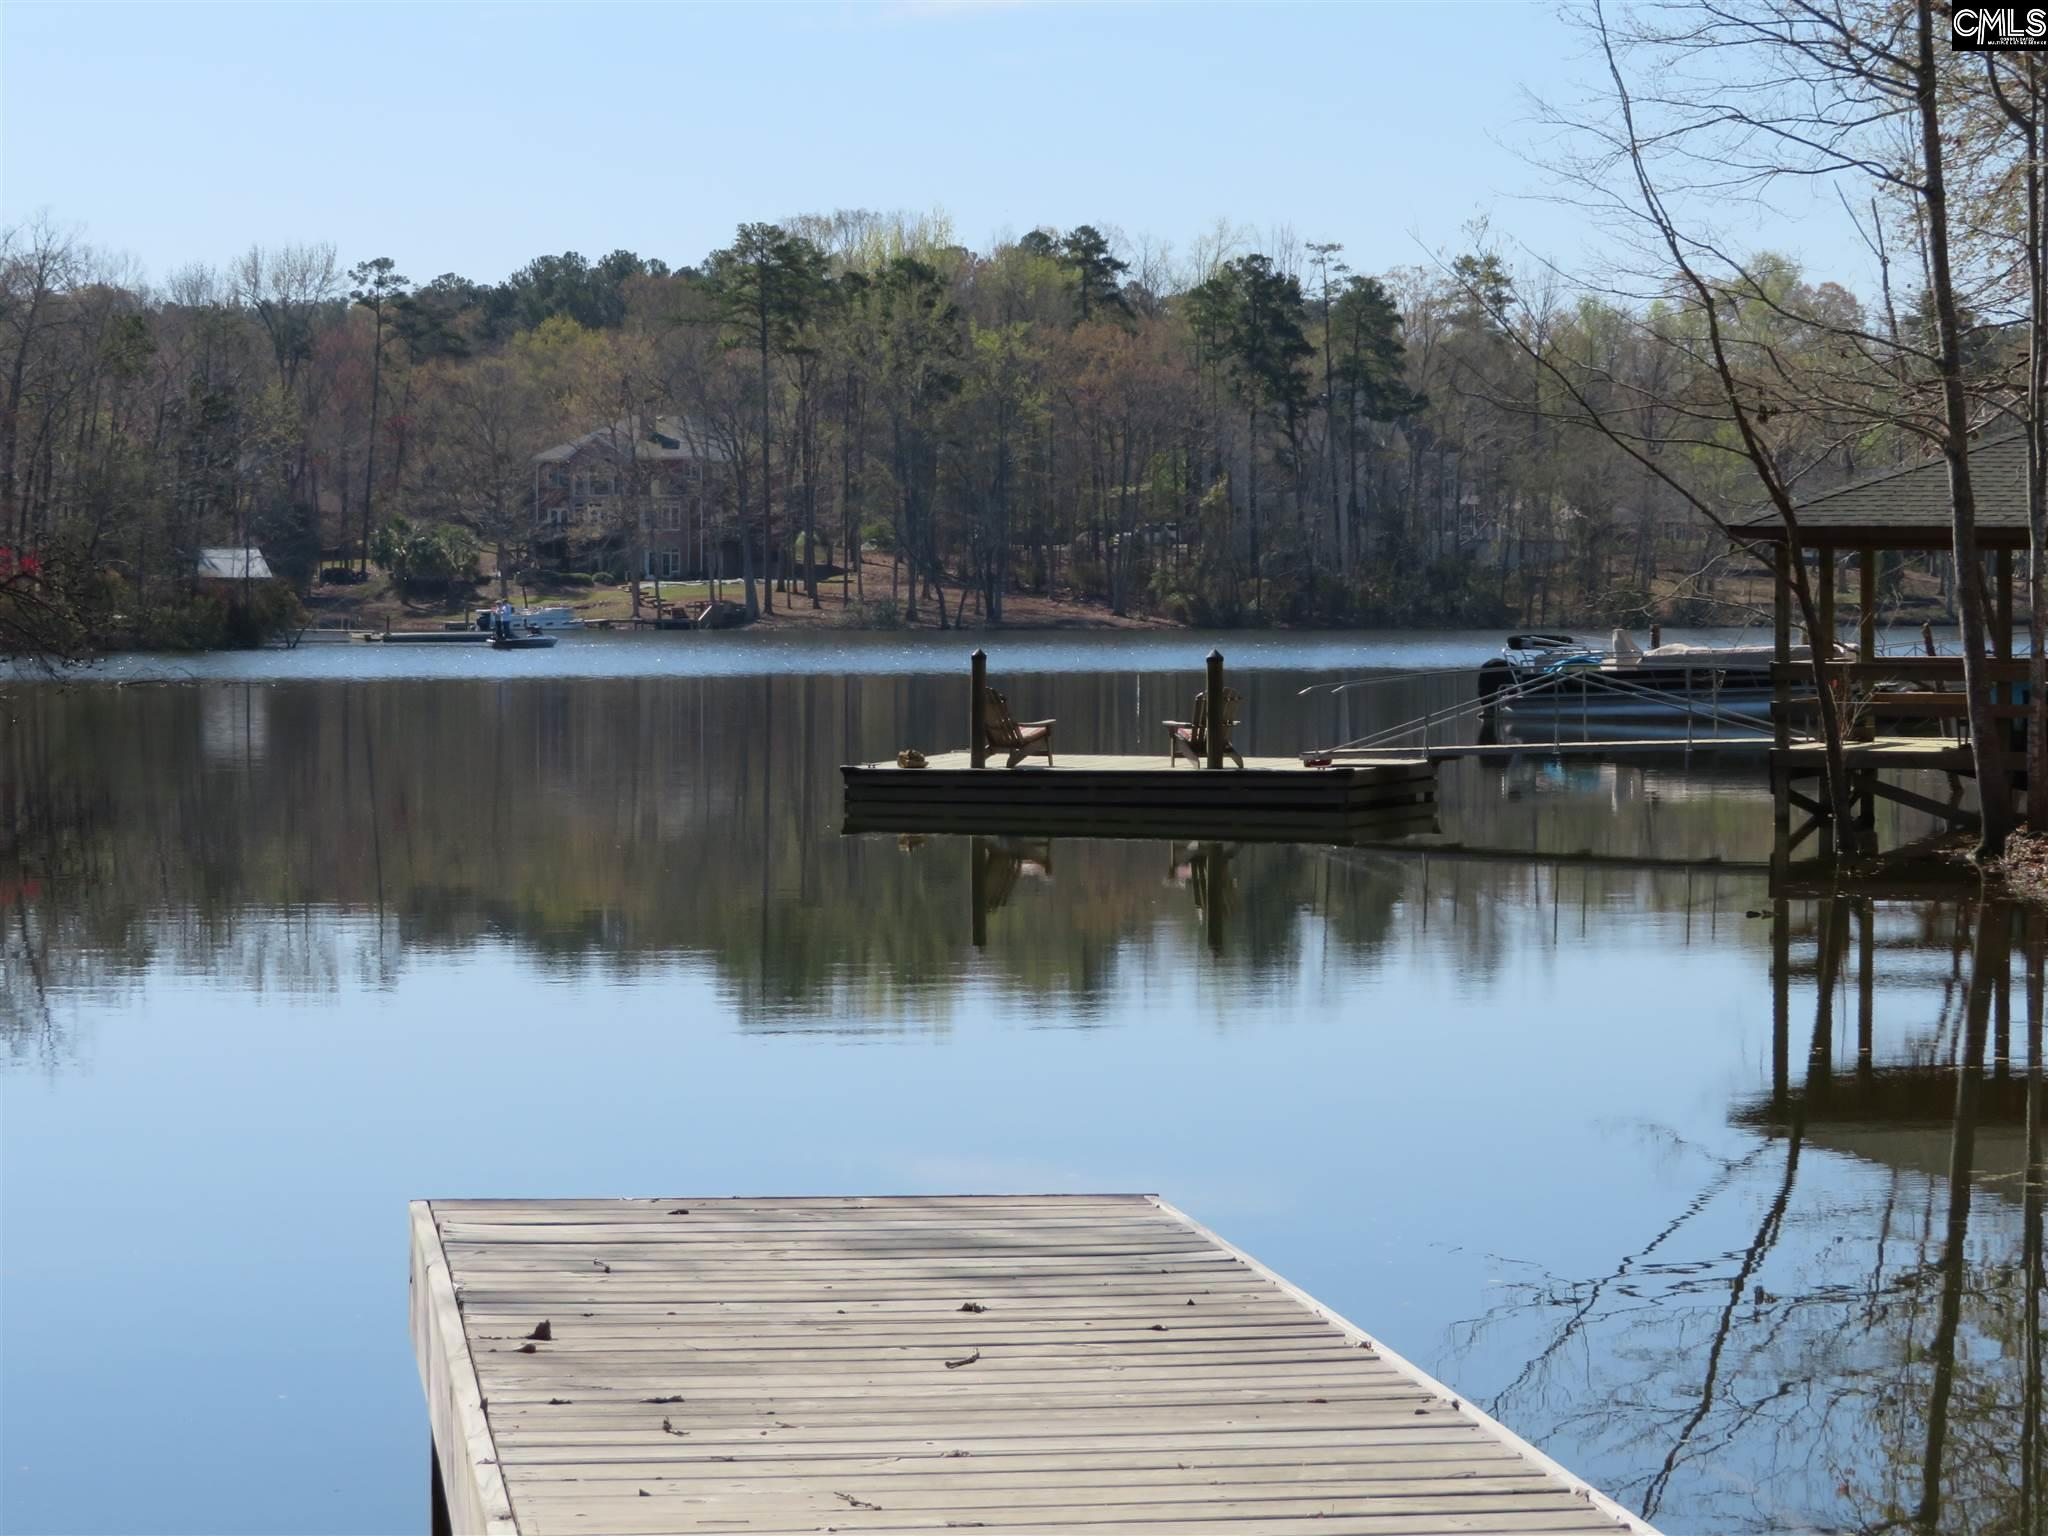 Wood Willow Point Chapin, SC 29036